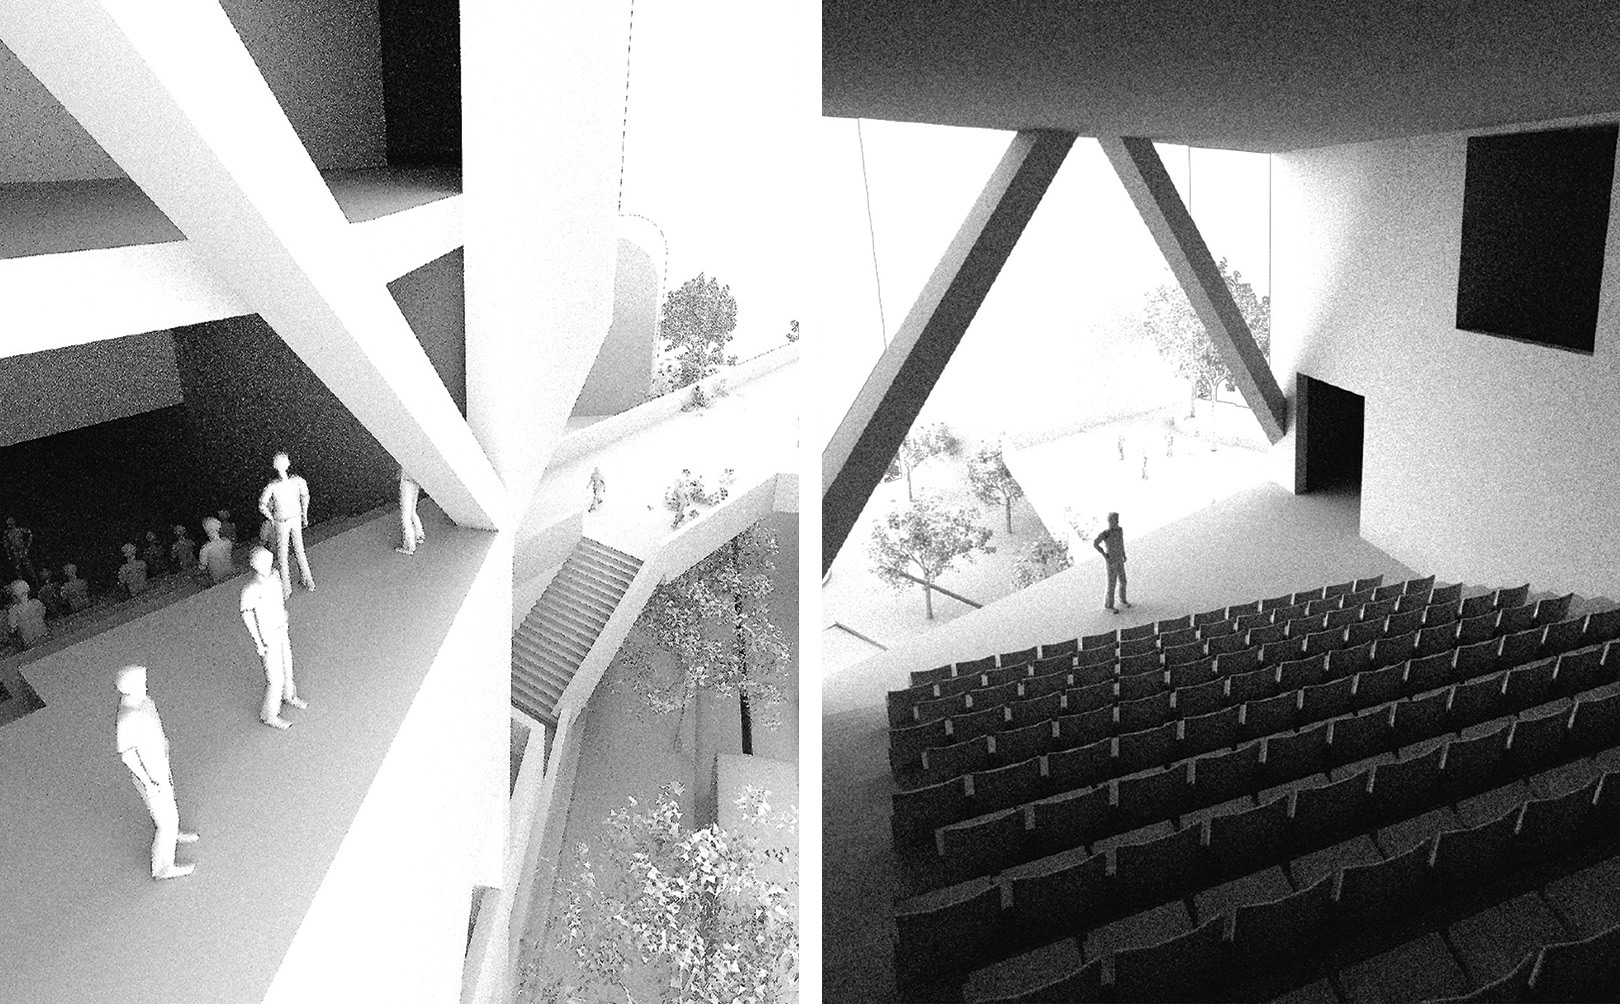 Multiple perspectives of the two public auditoria located through the vertical exhibition path of the SPCS HQ